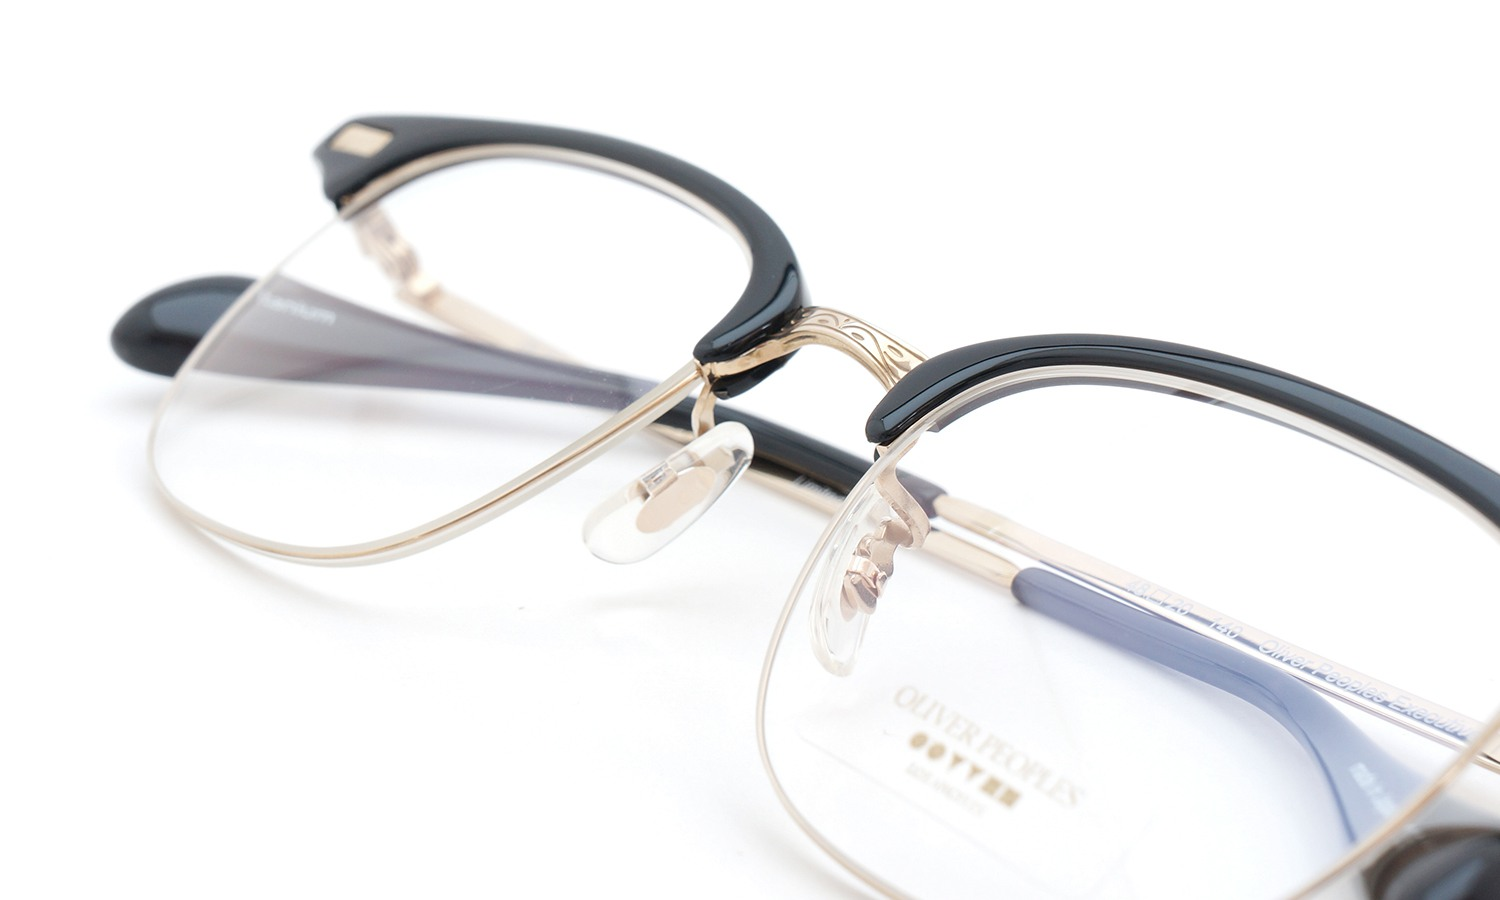 OLIVER PEOPLES オリバーピープルズ THE EXECUTIVE SERIES メガネ EXECUTIVE1 BK/G